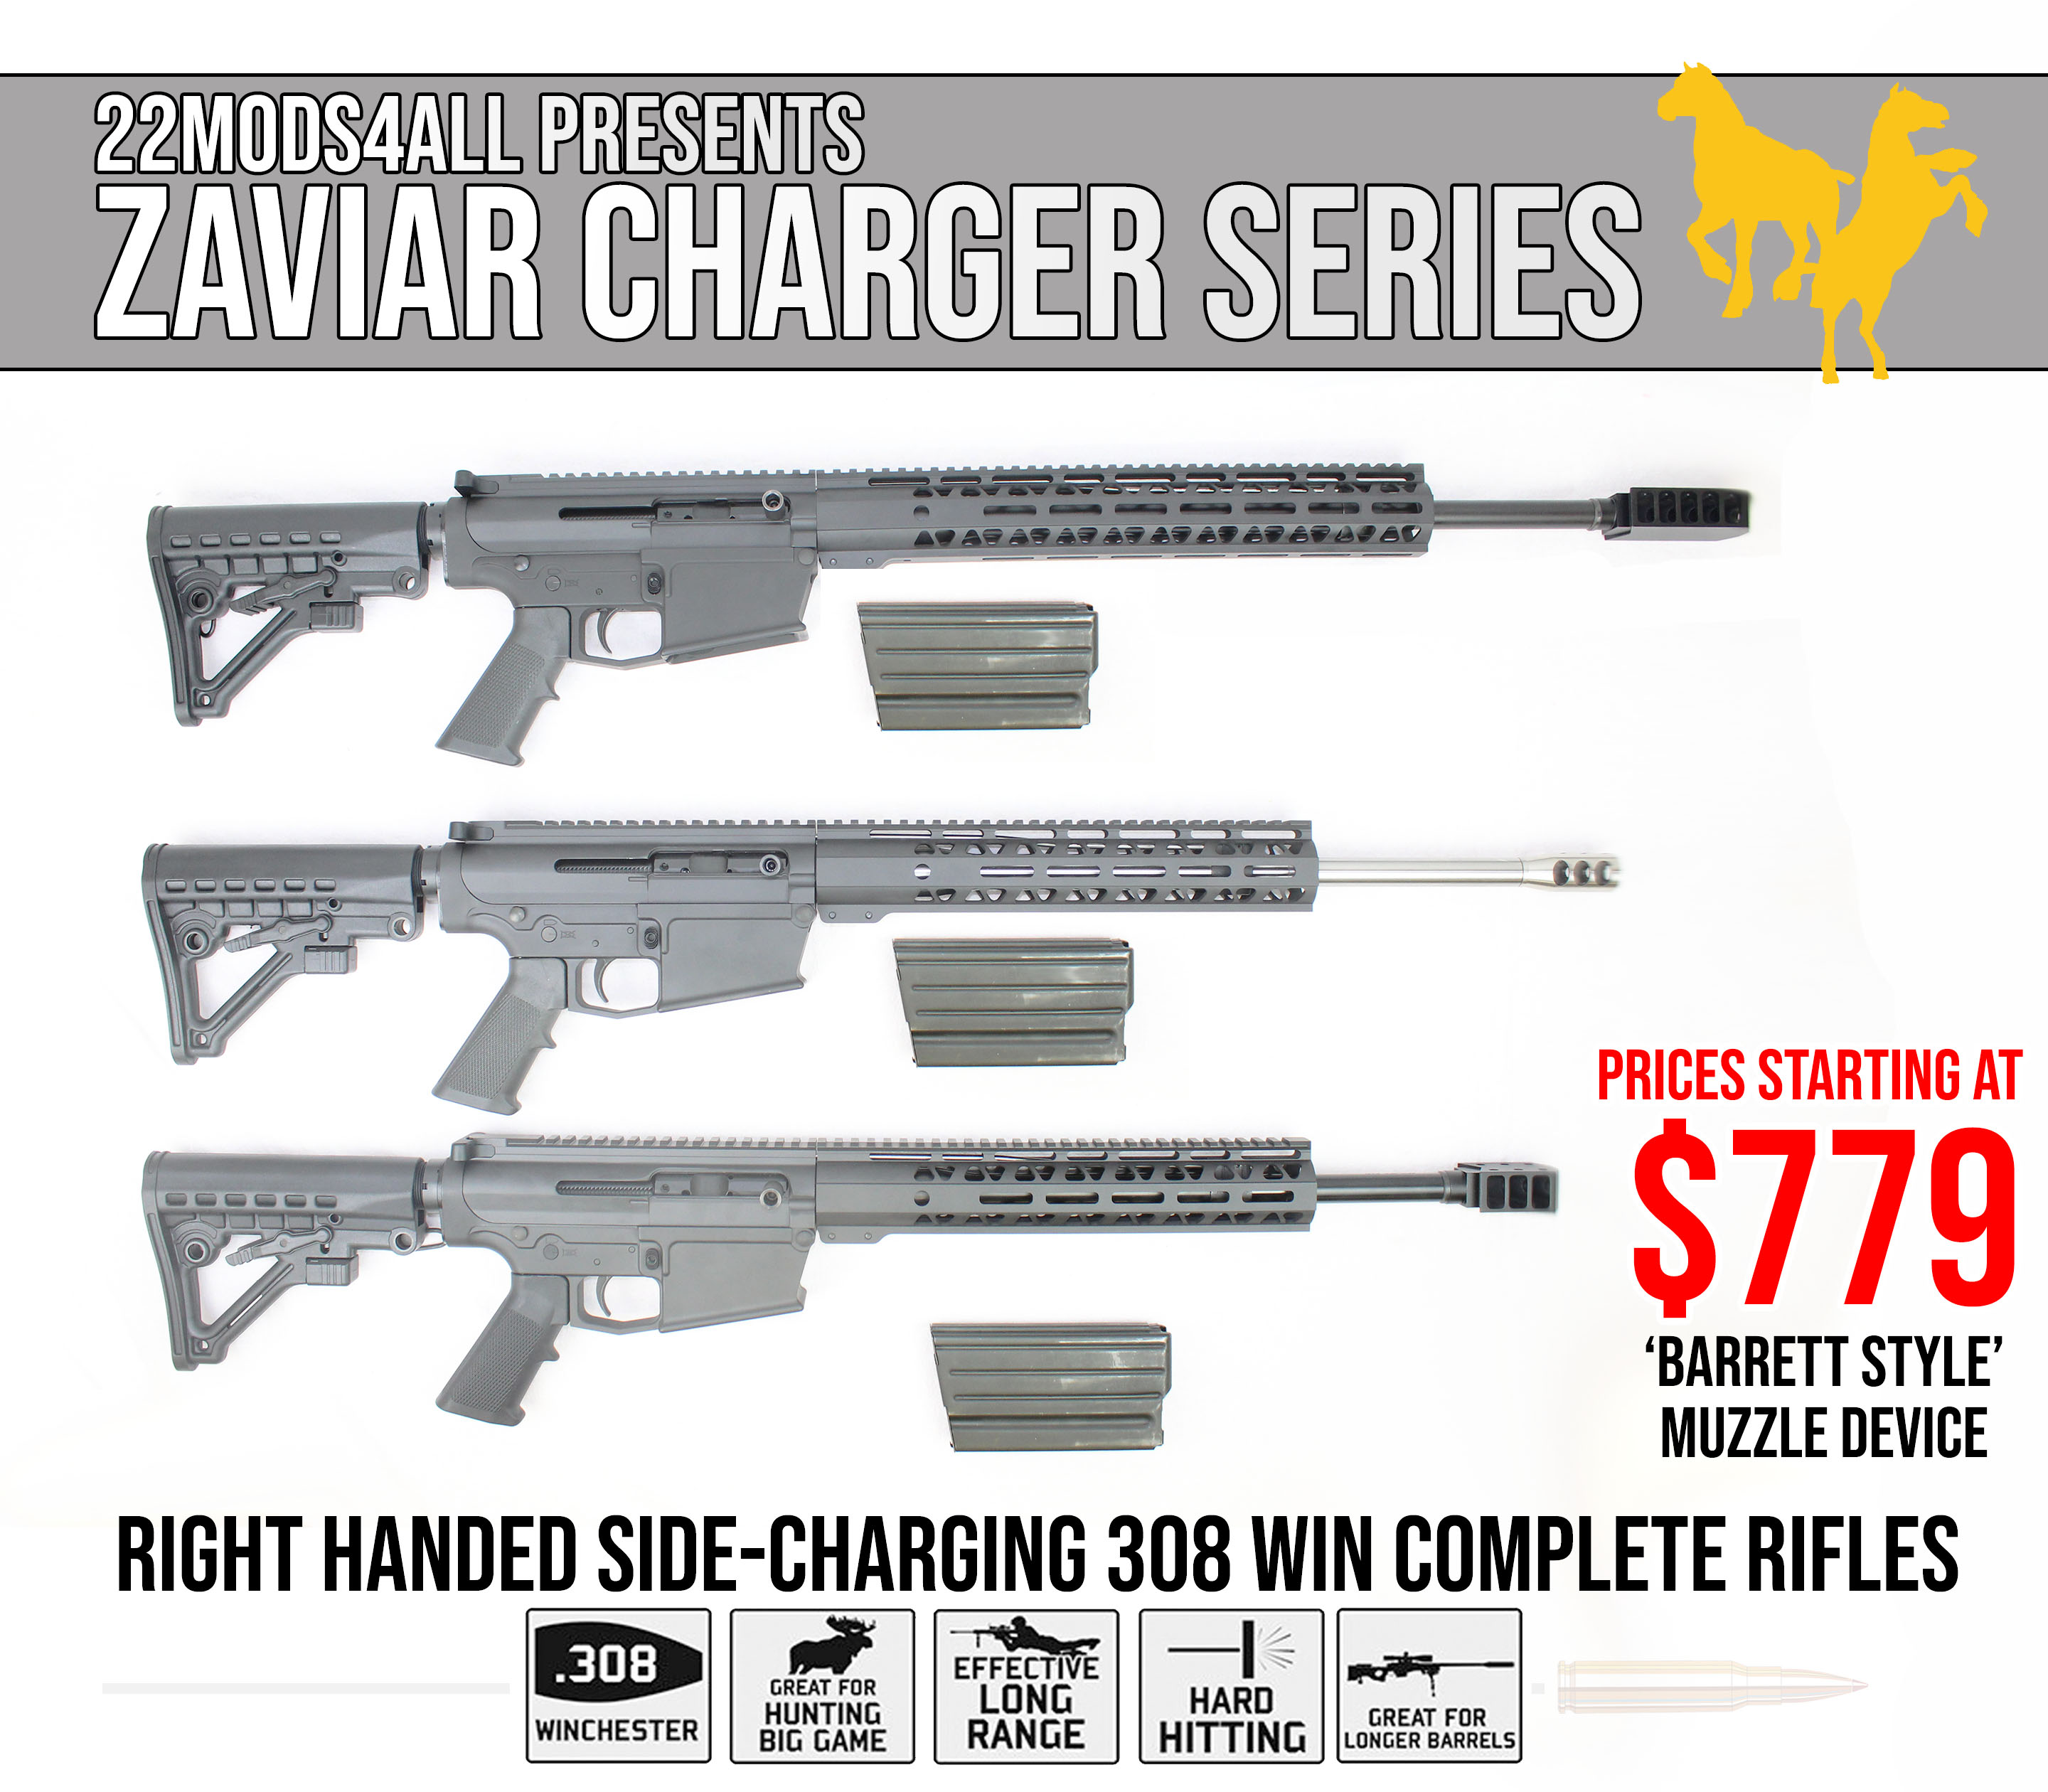 AR-10 Custom Side-Charging  308 WIN 'Charger Series' Complete Rifle  w/Barrett Style Muzzle Compensator - $779